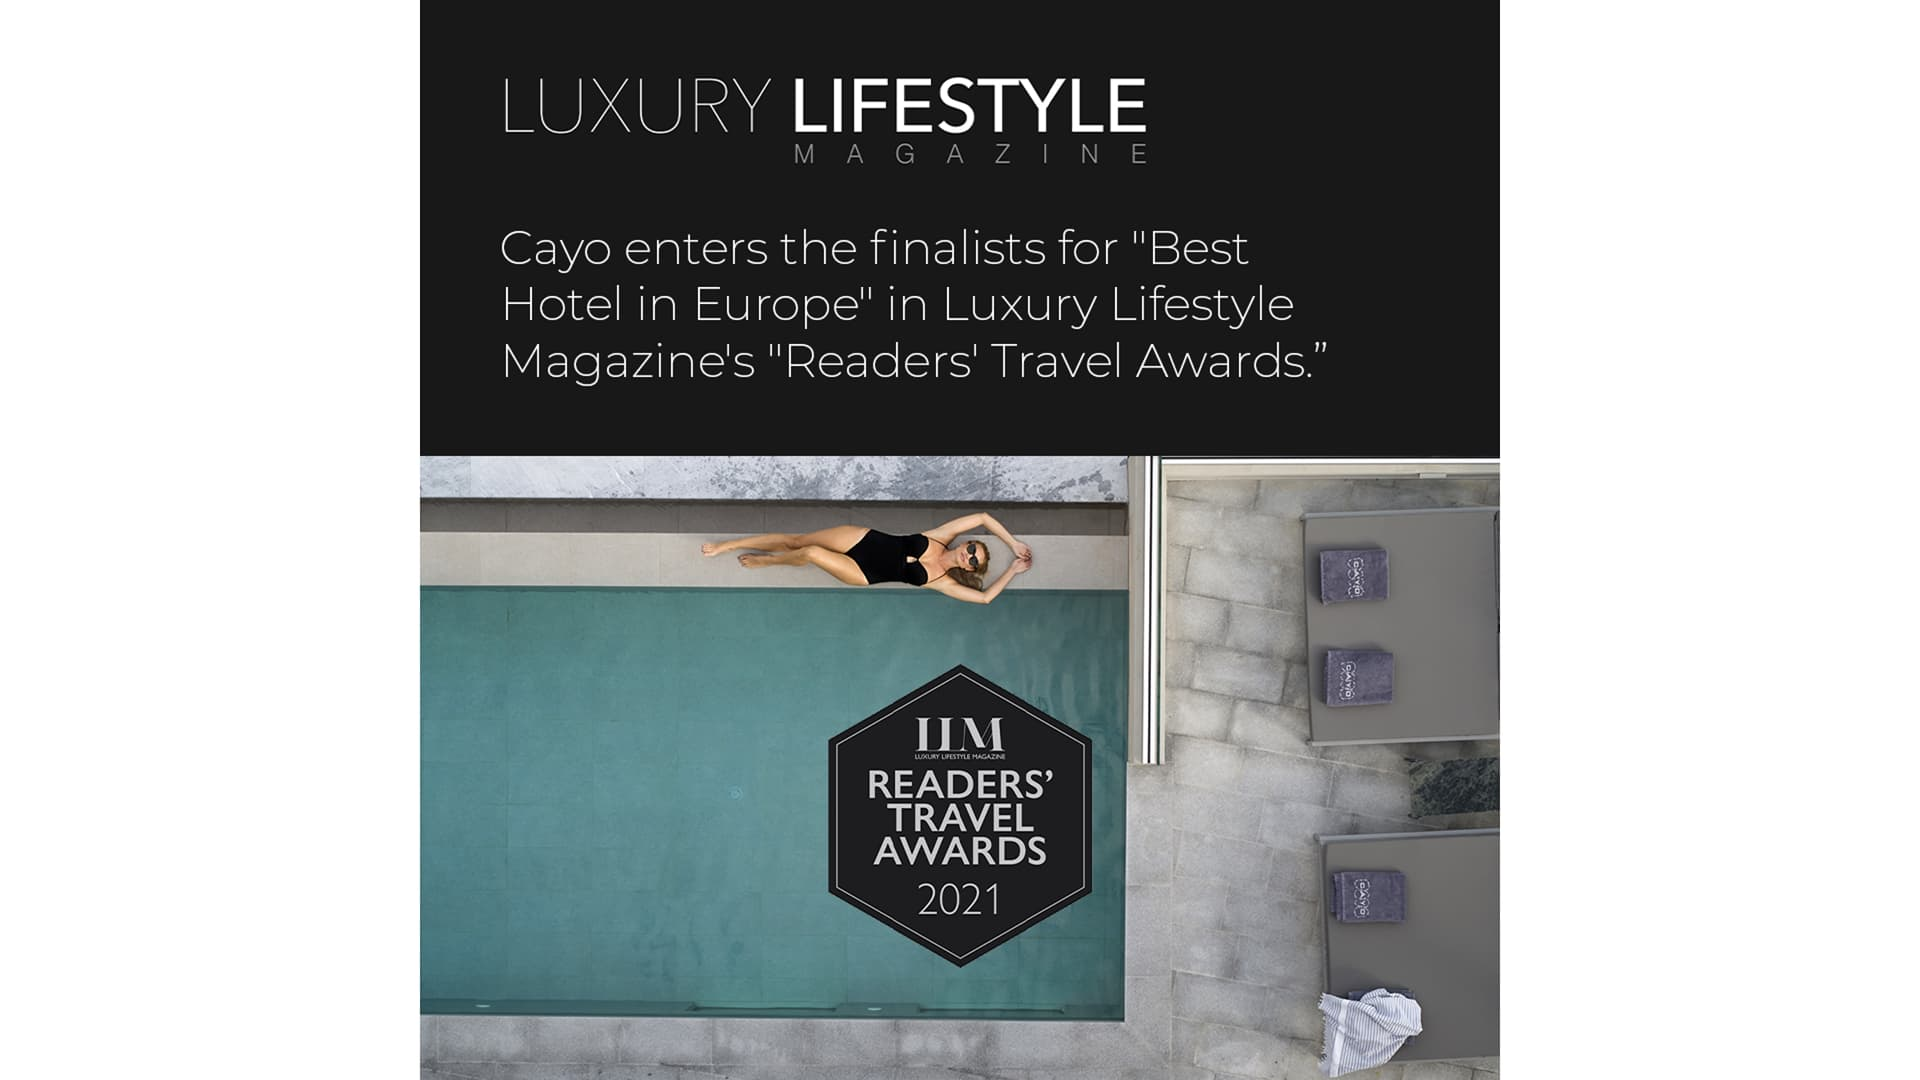 """Cayo entre's the finalists for """"Best Hotel in Europe"""" in Luxury Lifestyle Magazine's """"Readers' Travel Awards."""""""